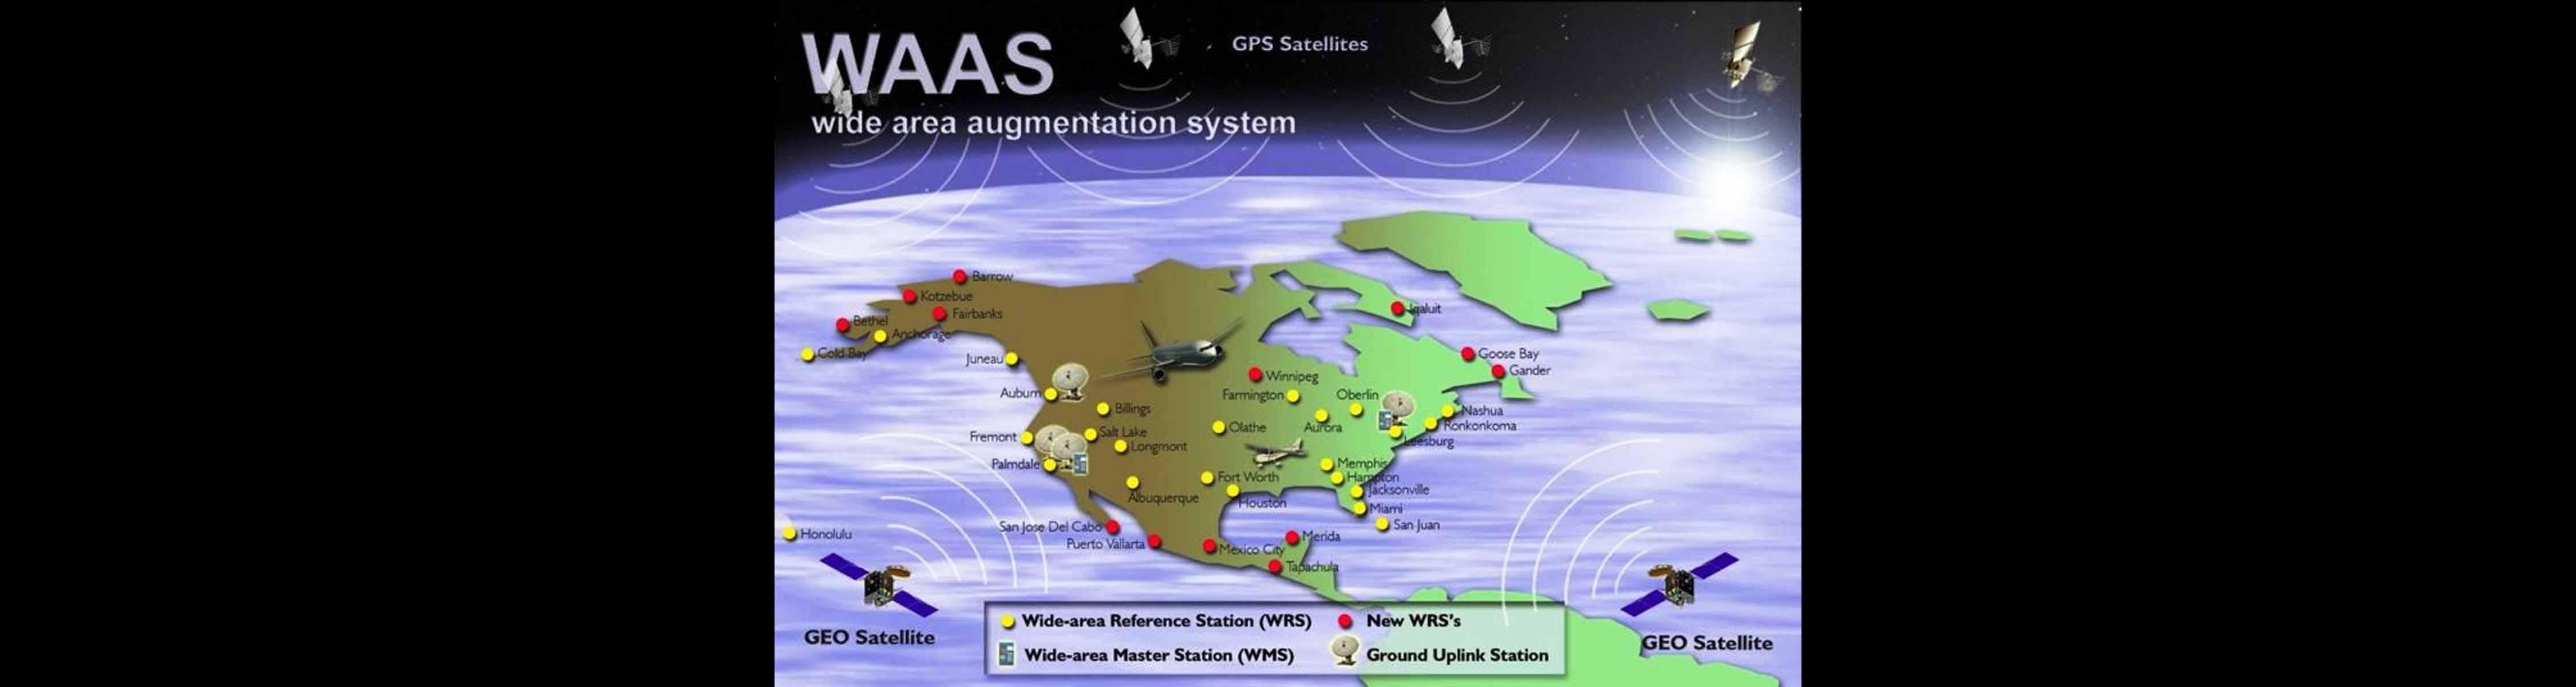 WAAS system for DGPS Receiver